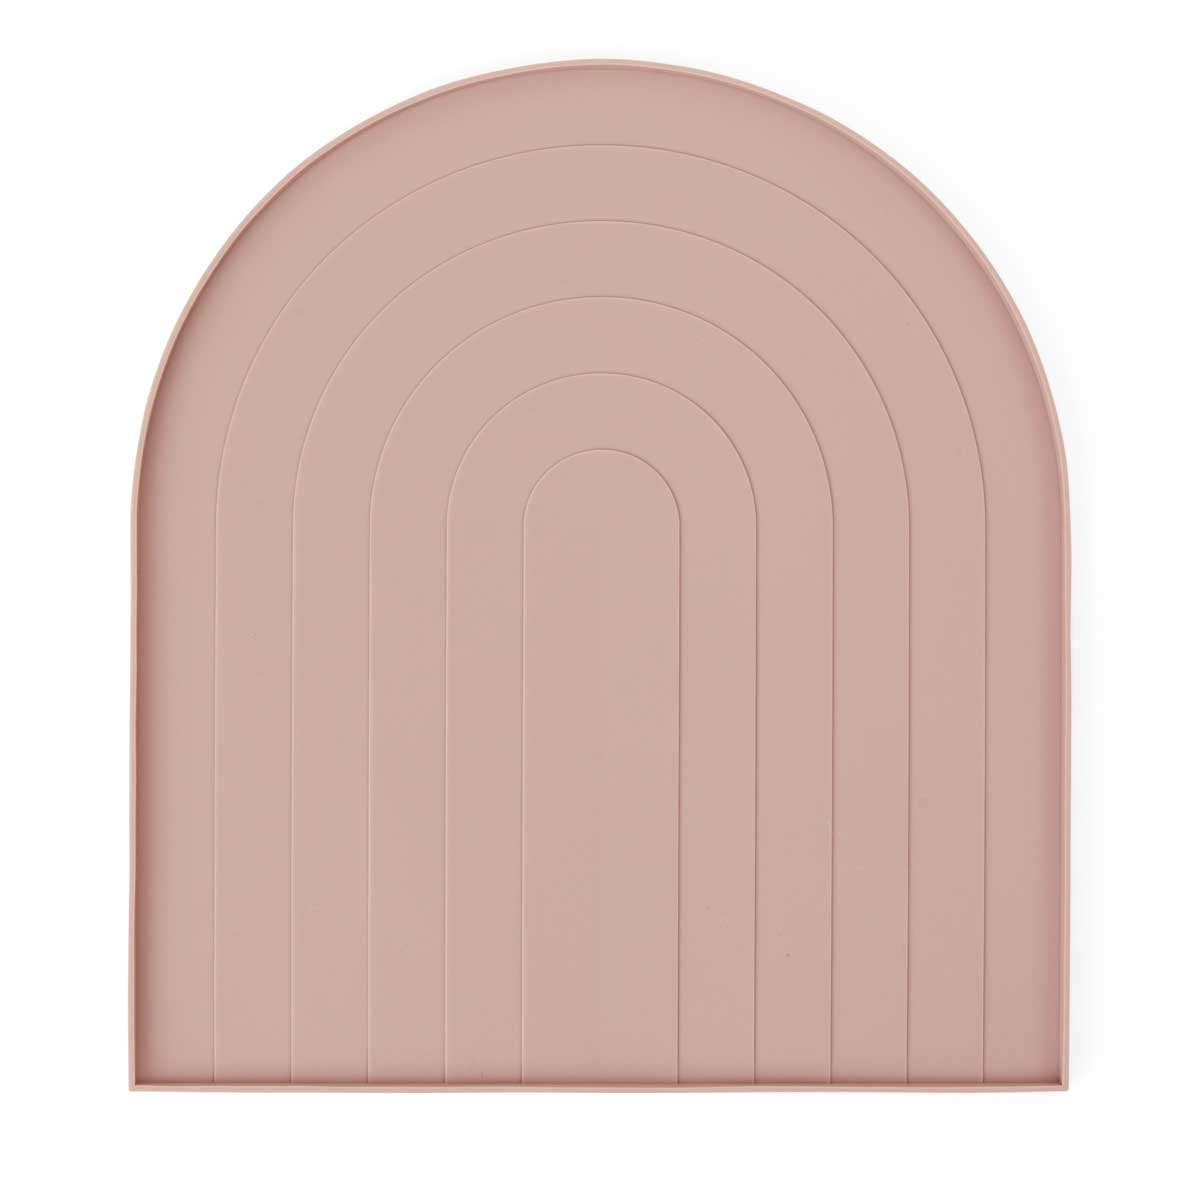 OYOY living design Dish tray Rose pink silicone